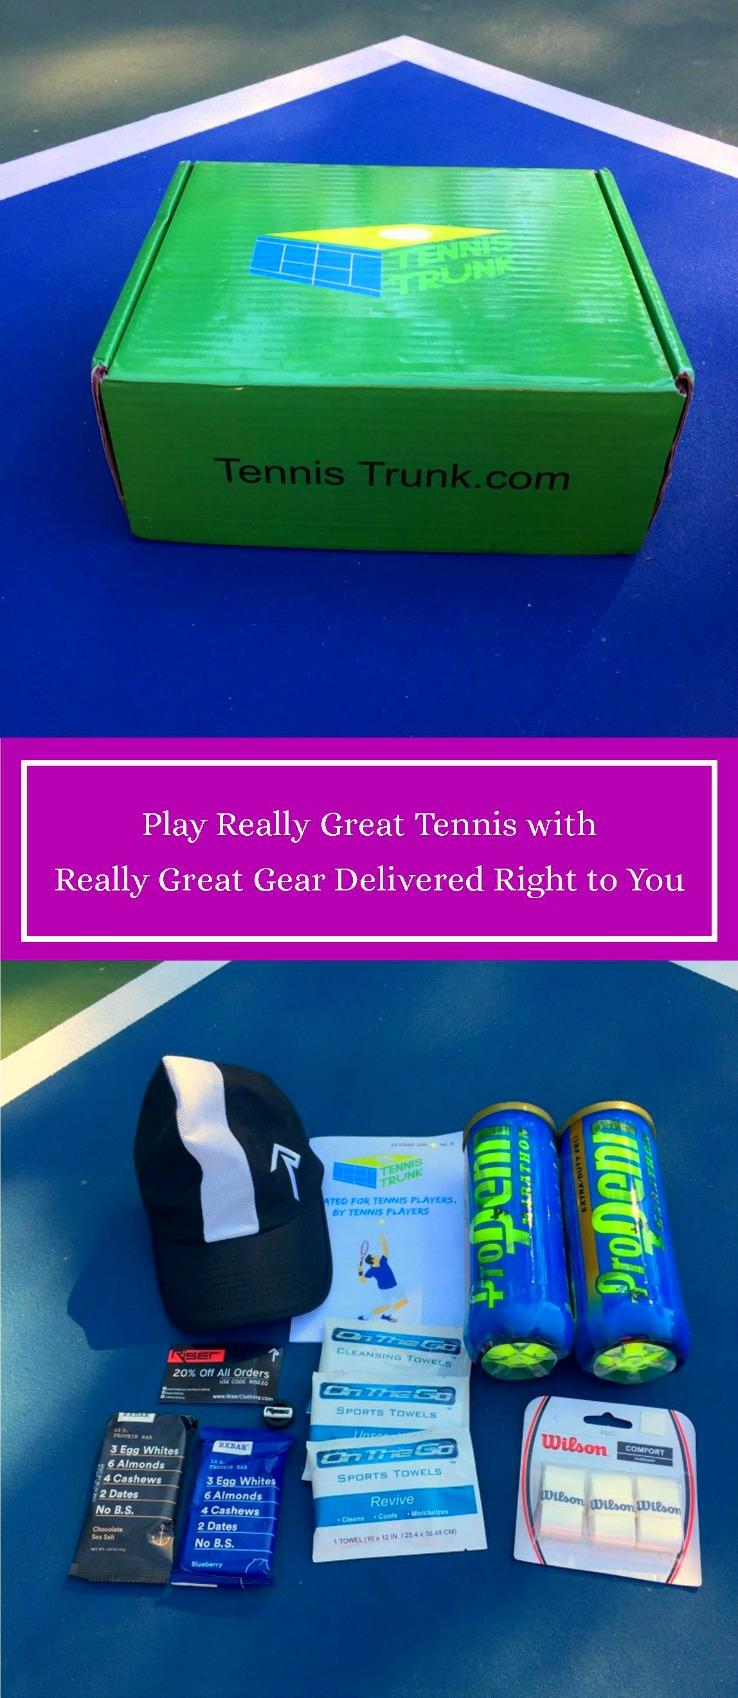 Play reall great tennis with really great gear from Tennis Trunk!